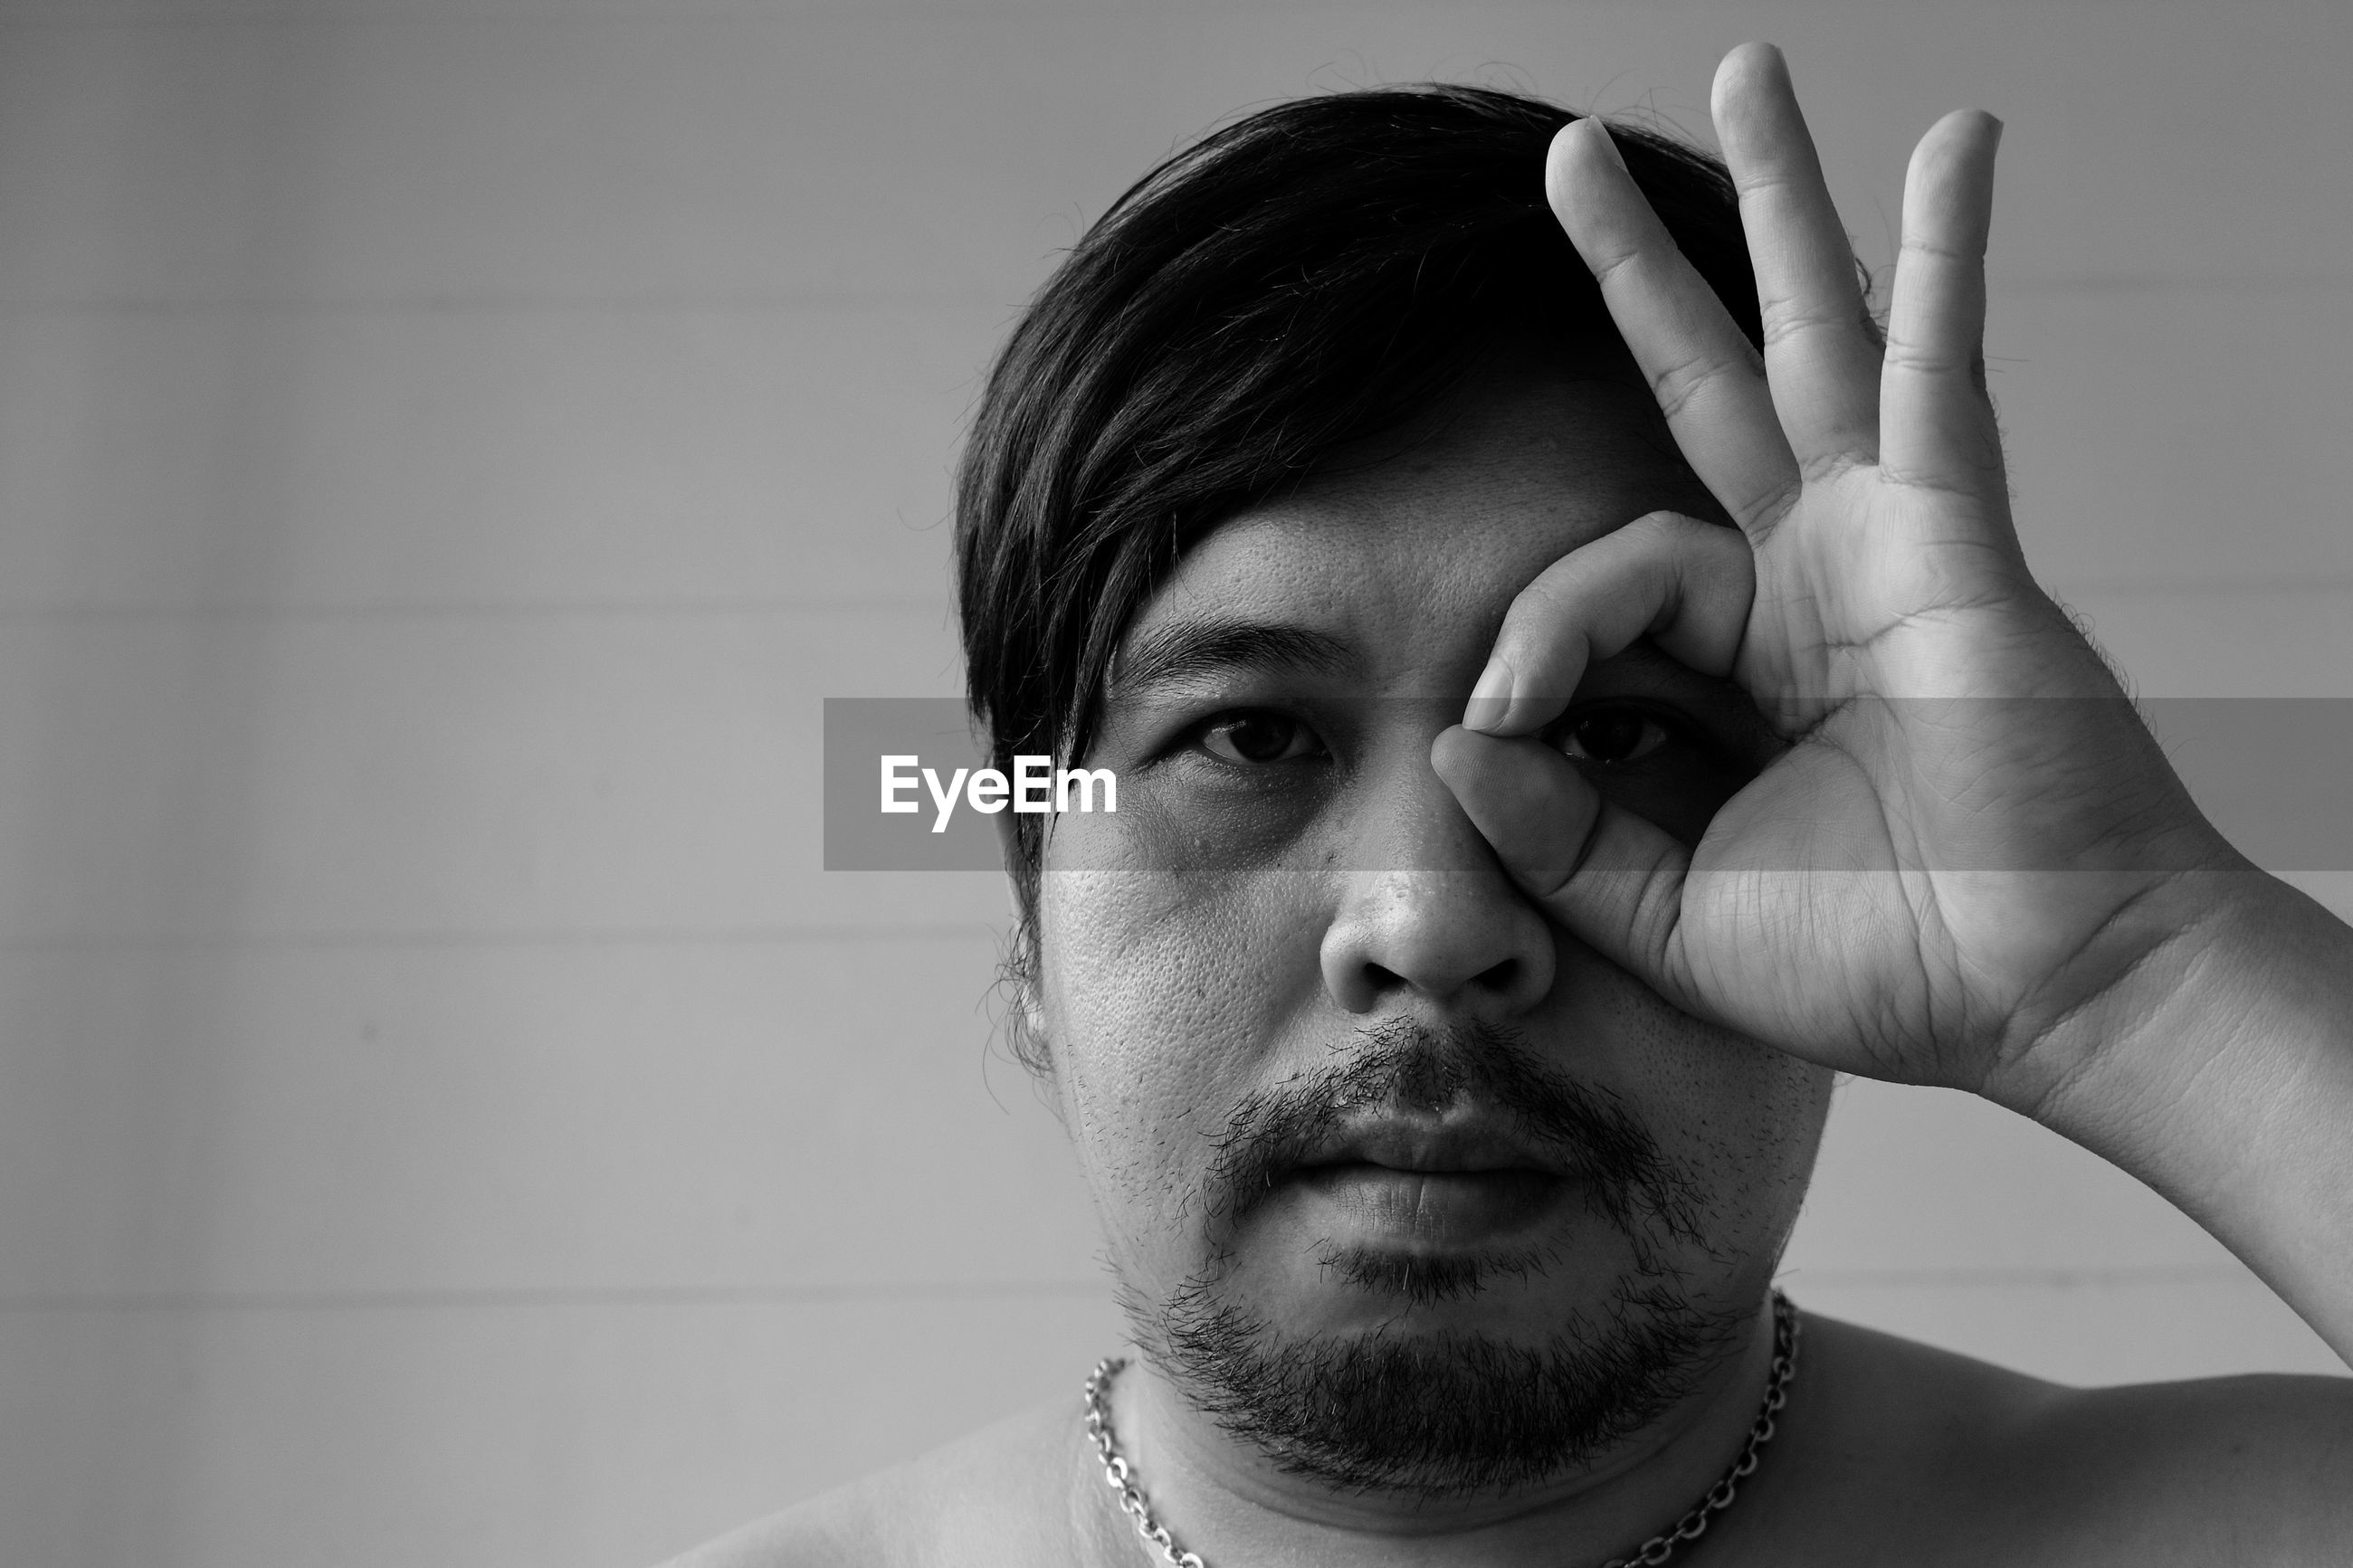 Close-up of shirtless man gesturing ok sign over eyes while looking away